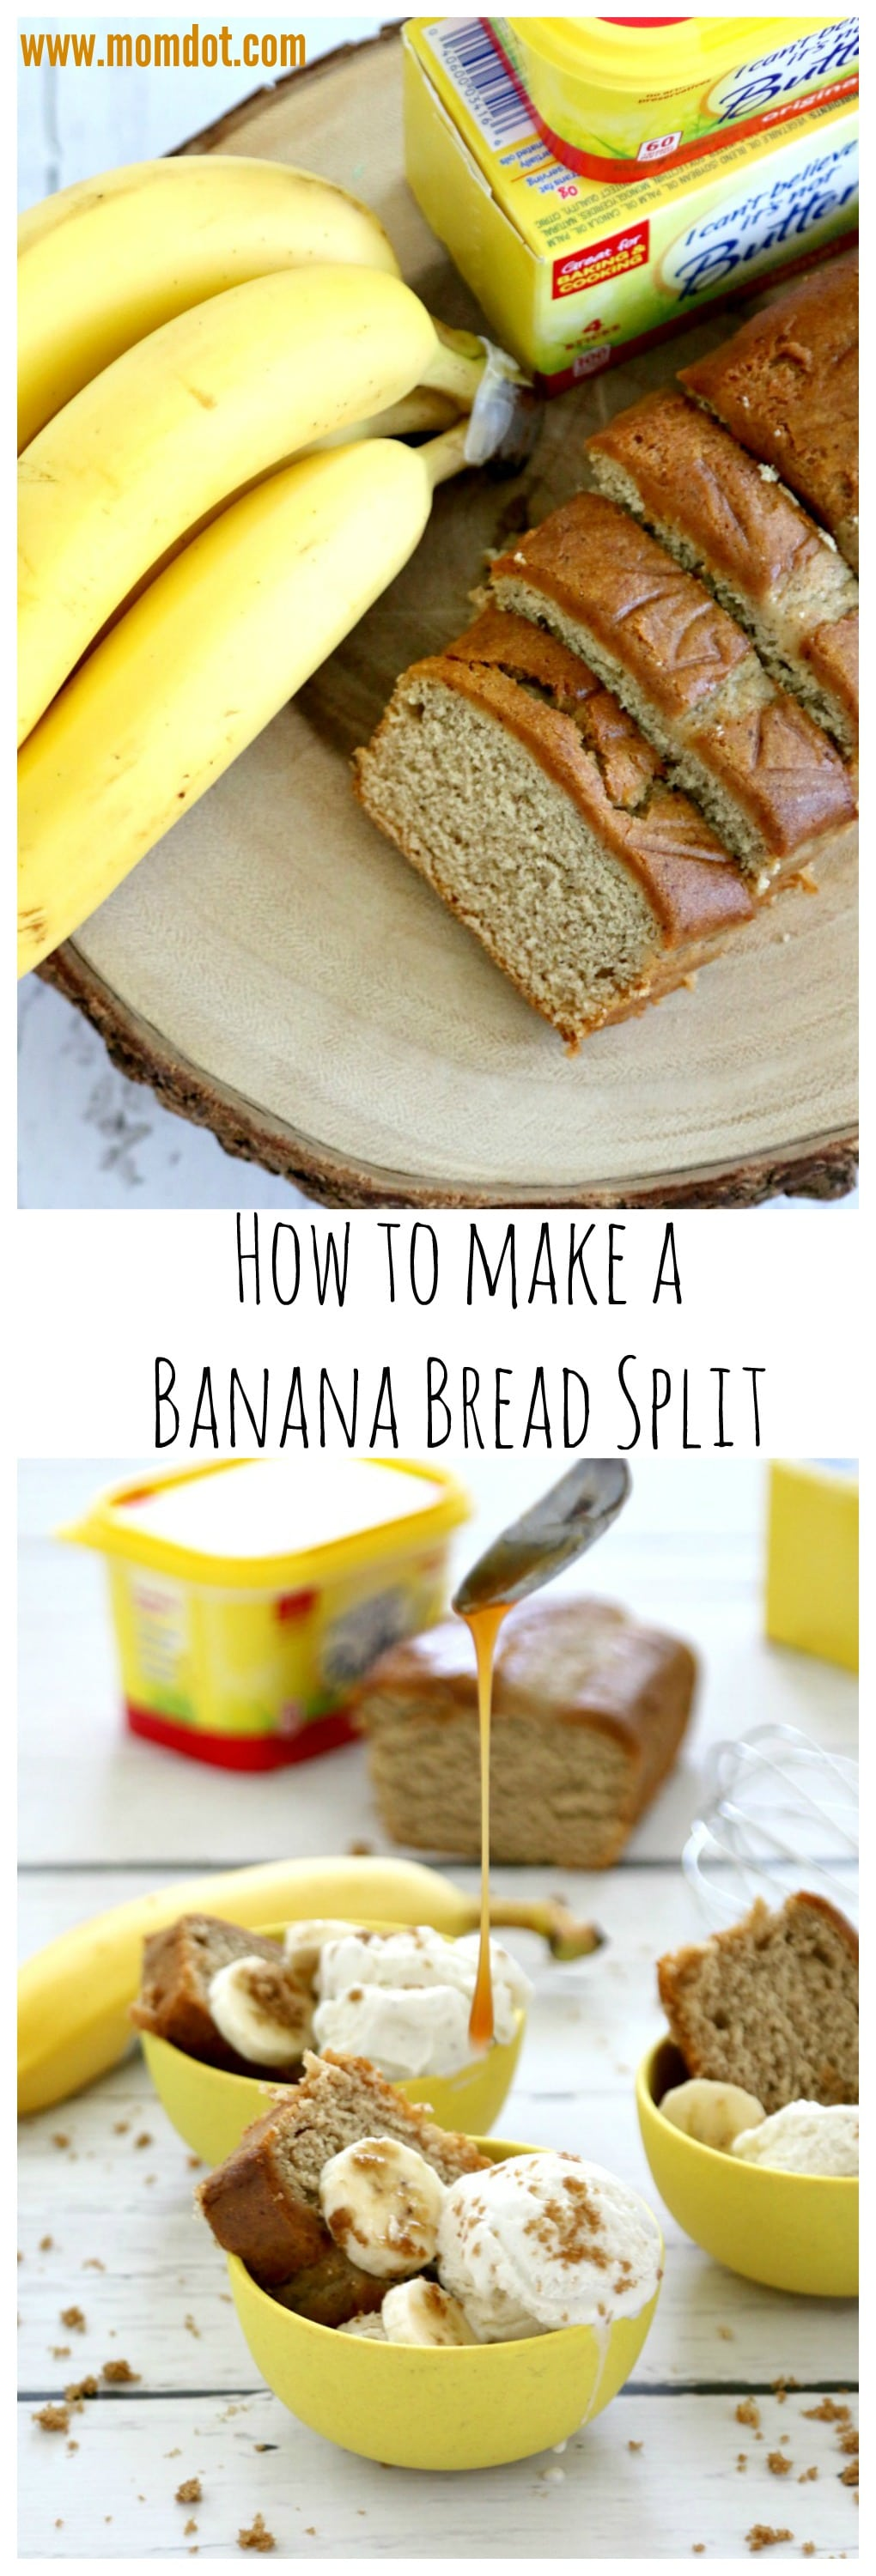 Banana Bread Split Afternoon Snack - great recipe to use leftover banana bread and form into a filling and fun afternoon dessert and snack recipe